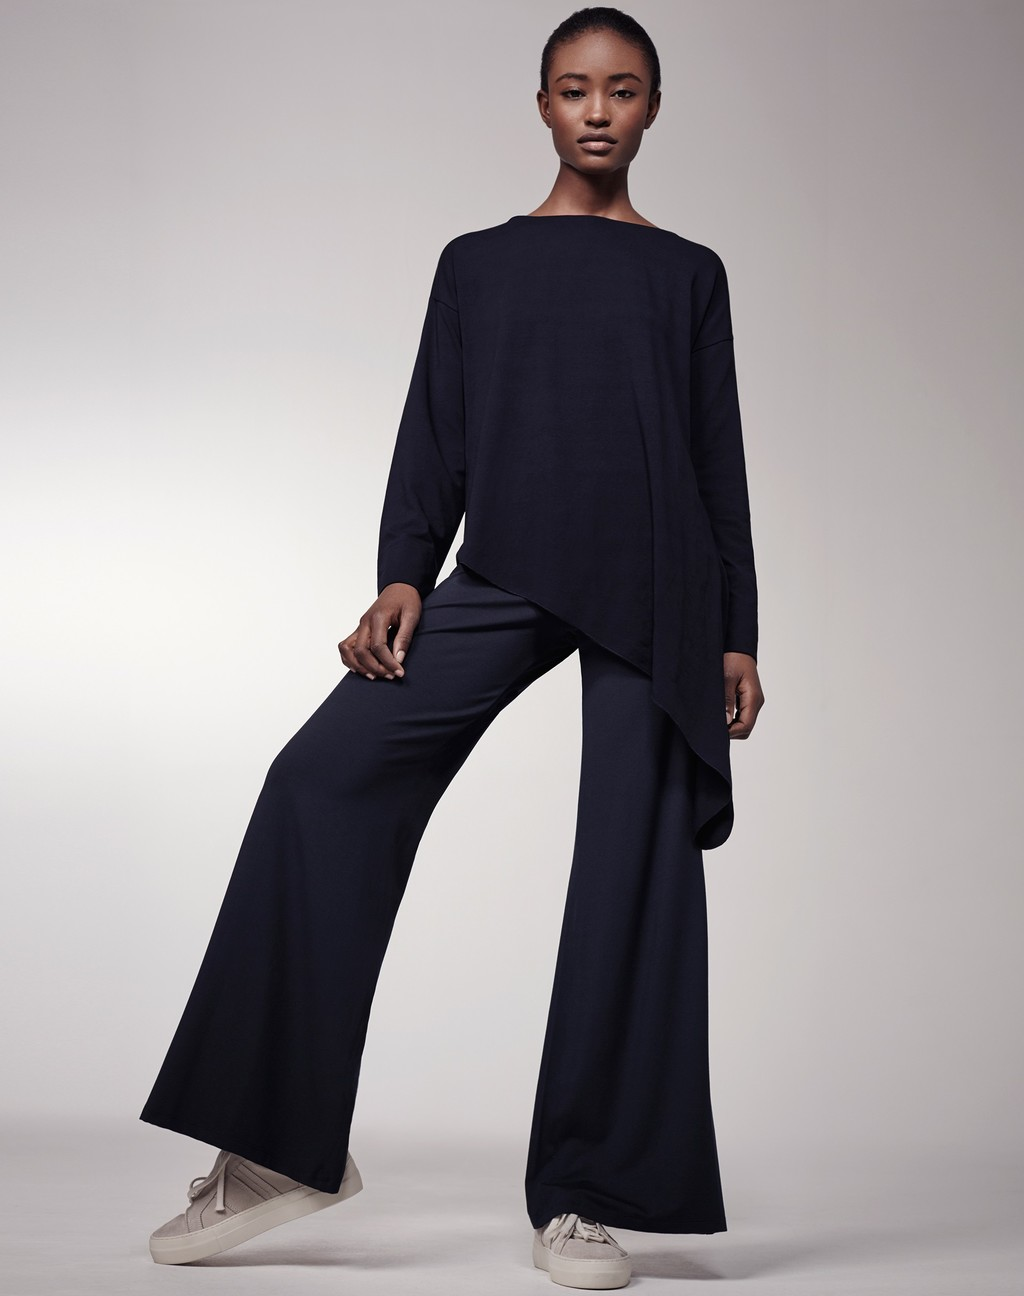 Palazzo Pants Navy - pattern: plain; predominant colour: navy; occasions: casual, creative work; length: standard; style: top; fibres: viscose/rayon - stretch; fit: body skimming; neckline: crew; sleeve length: long sleeve; sleeve style: standard; pattern type: fabric; texture group: other - light to midweight; season: s/s 2016; wardrobe: basic